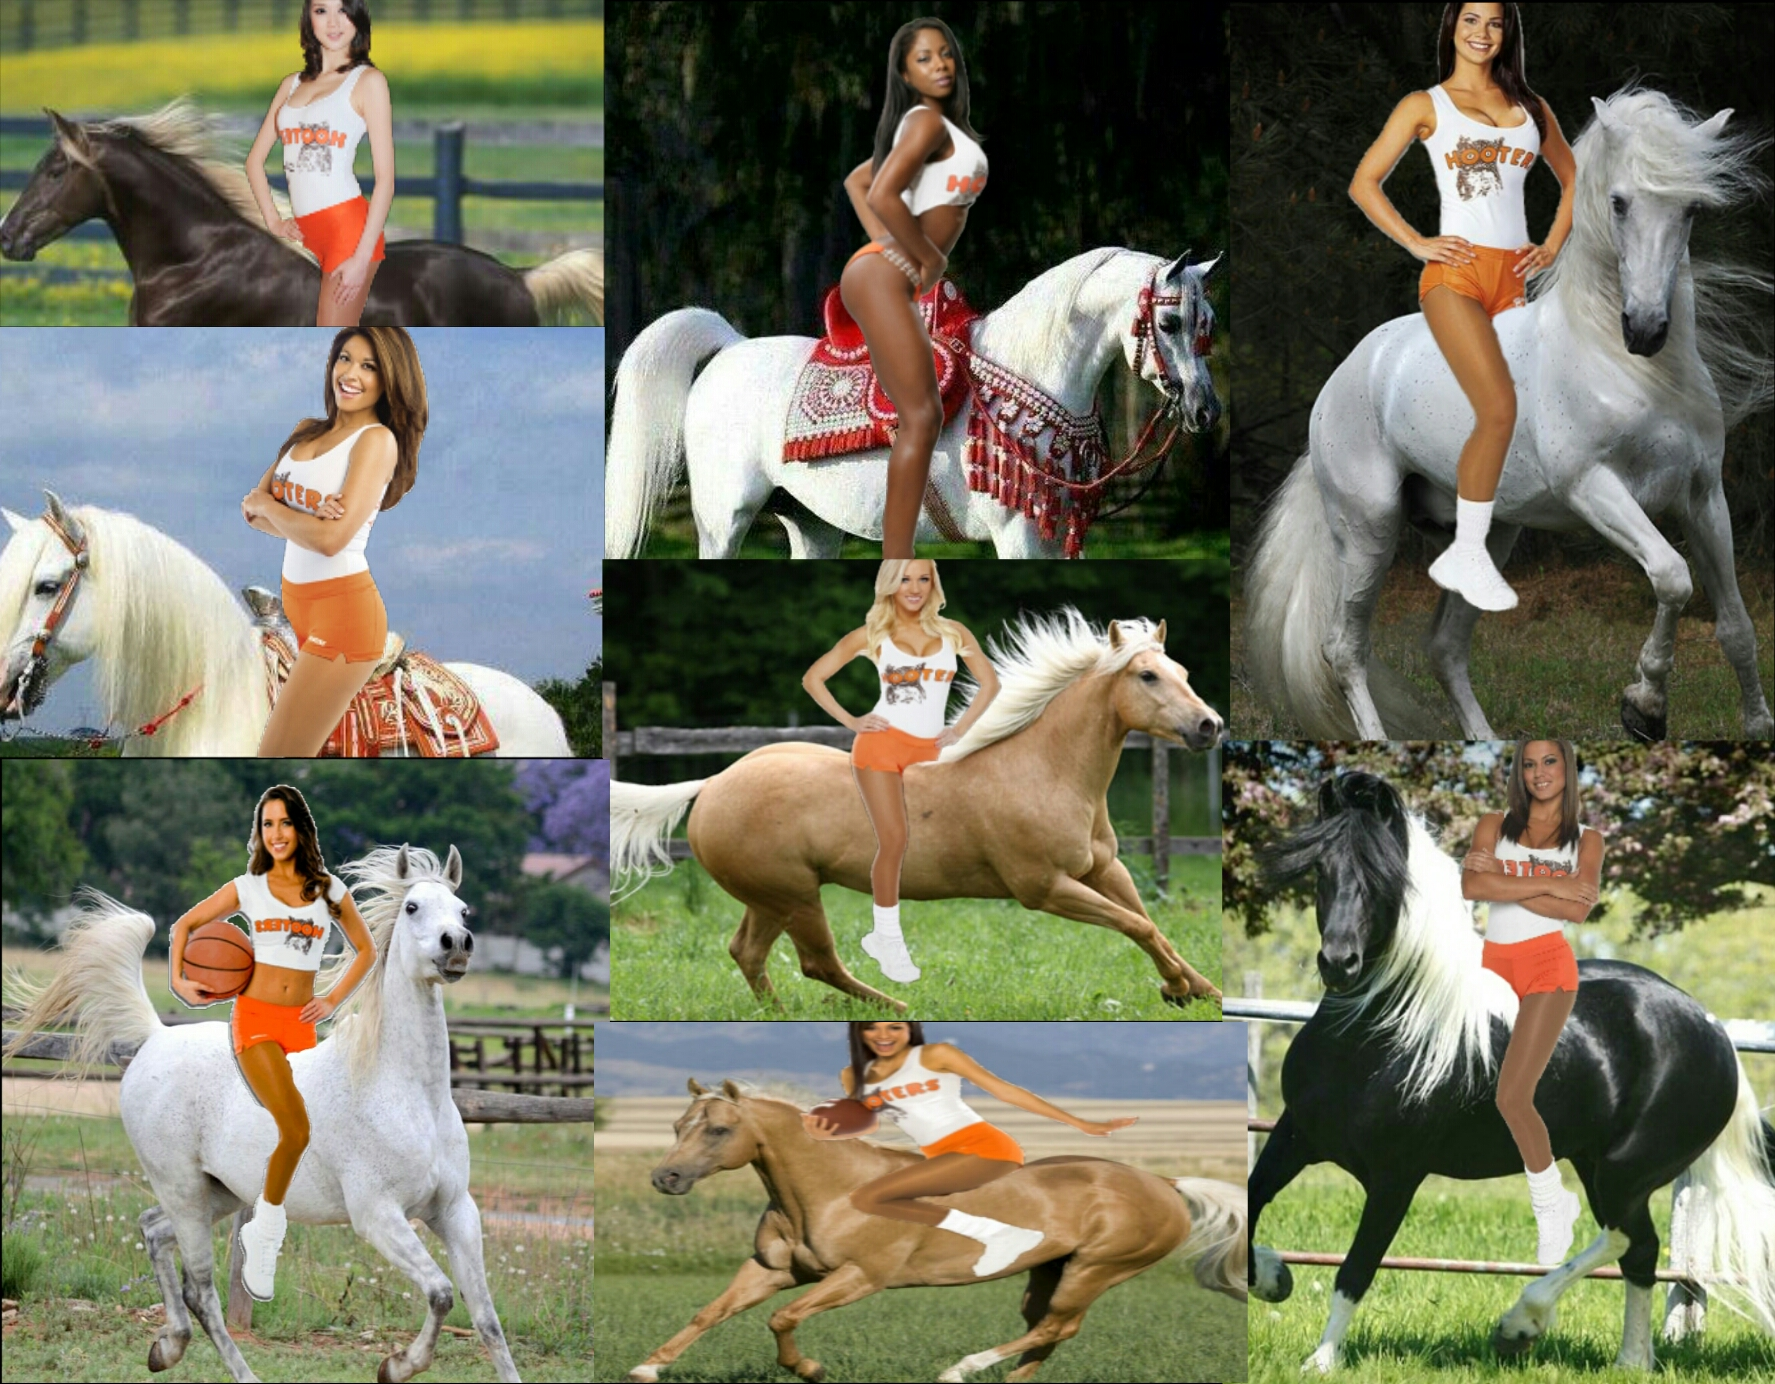 Cute Girls From Hooters Riding On Beautiful Horses Girls And Horses Foto 39420472 Fanpop